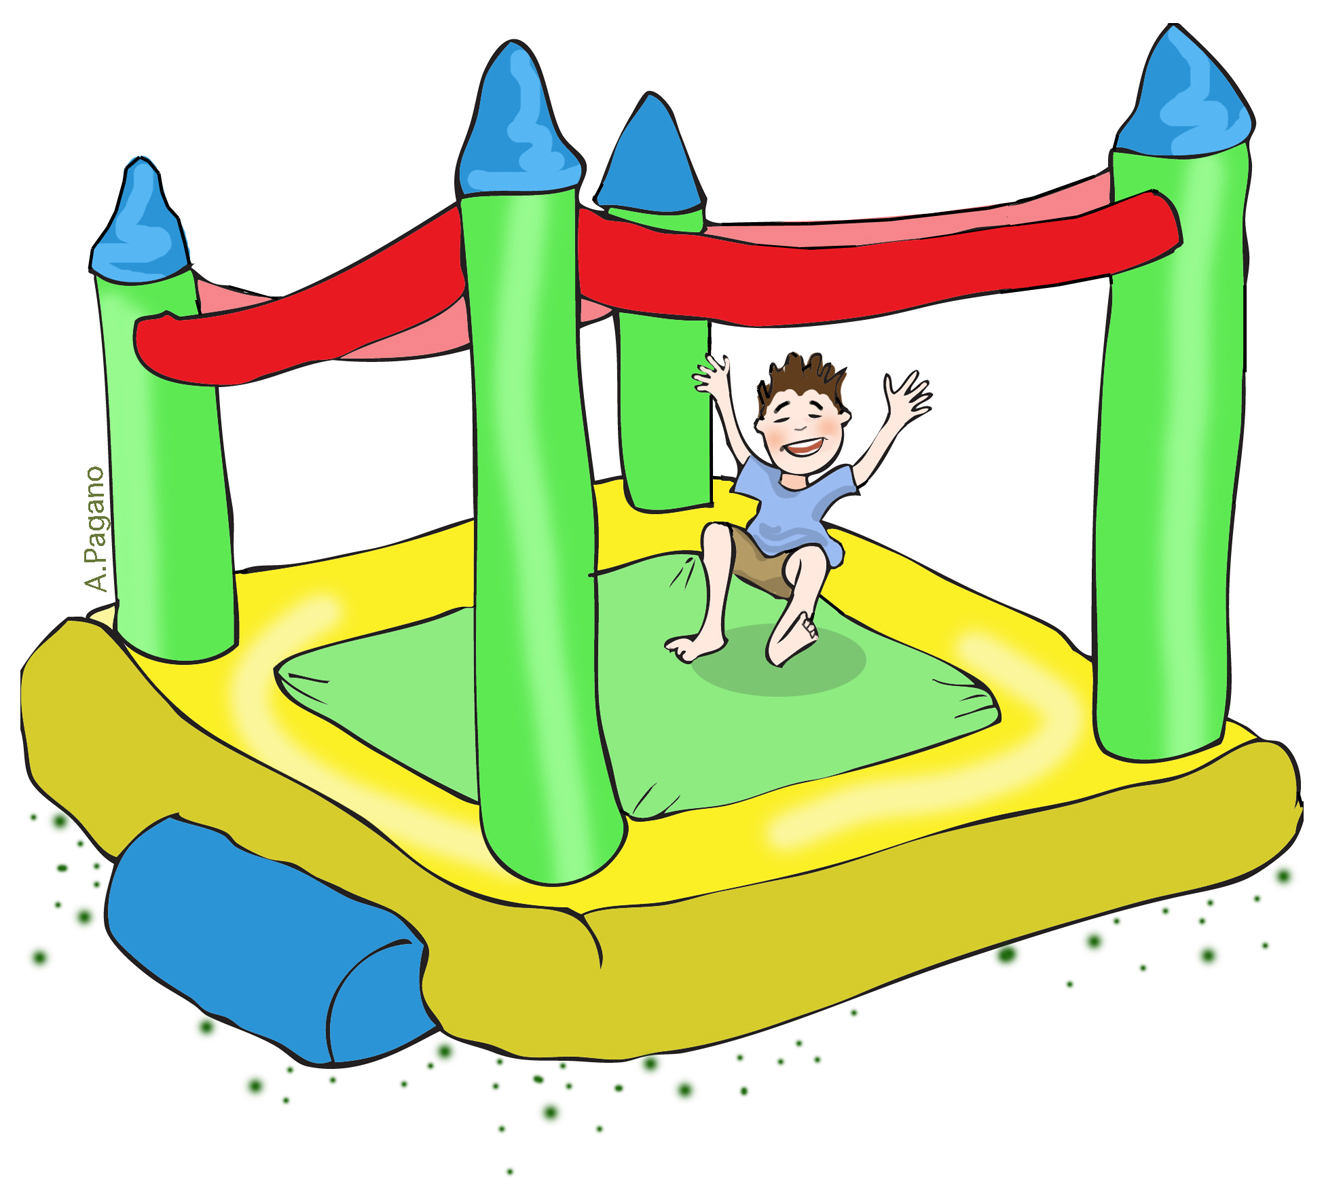 Clip Art Bounce House Clip Art carnival bounce house clipart kid hsa 2014 2015 upcoming events